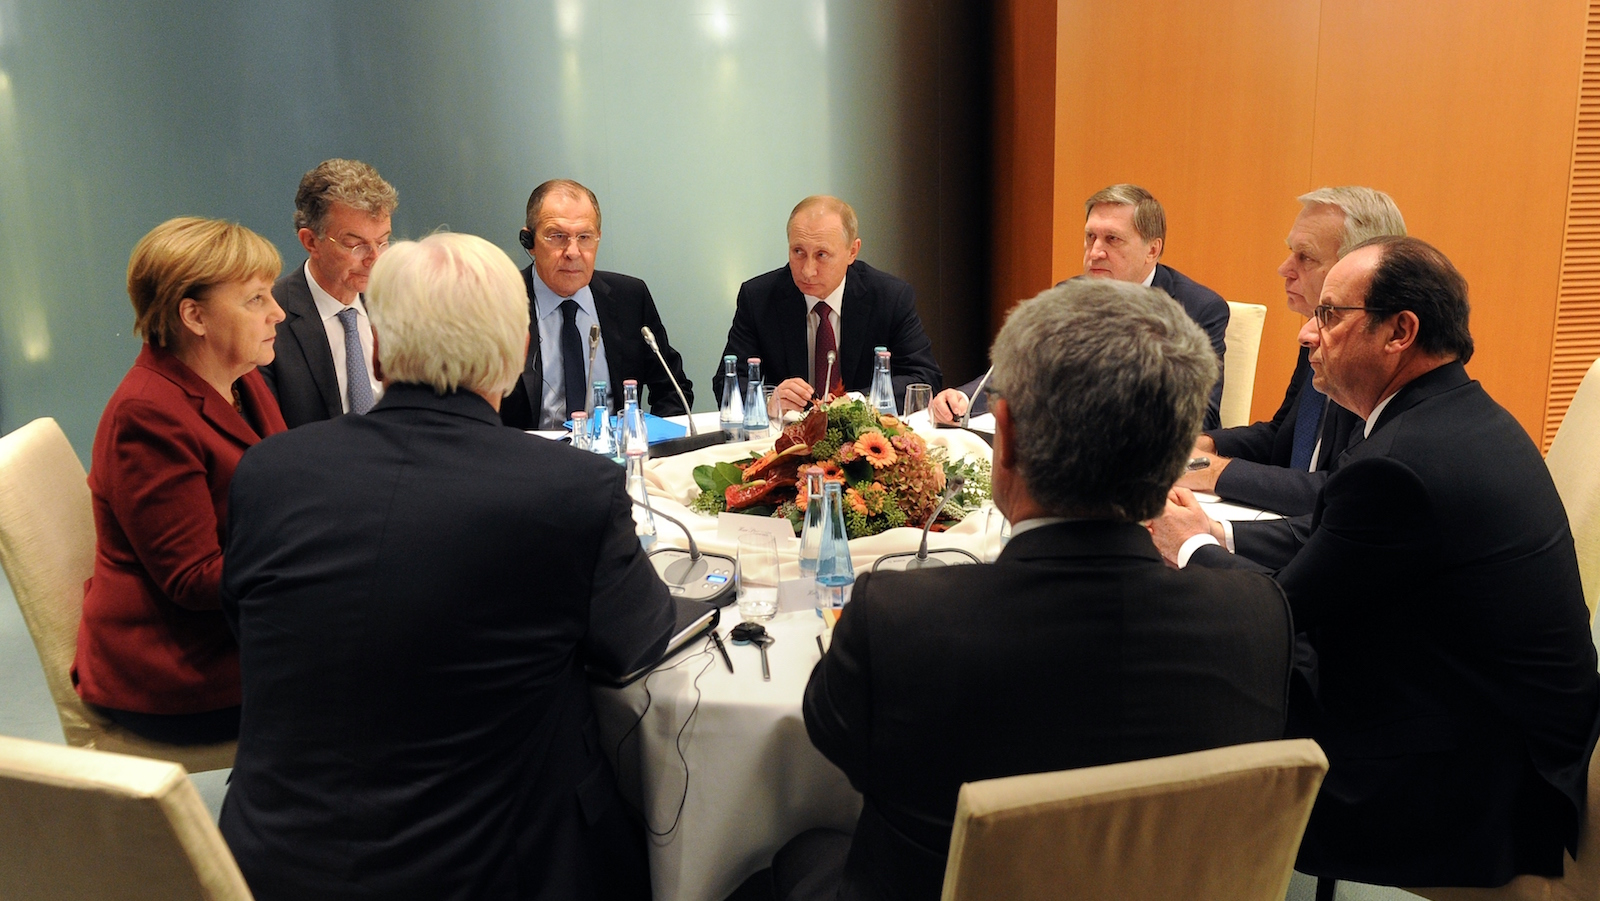 Angela Merkel sits at a table with all men